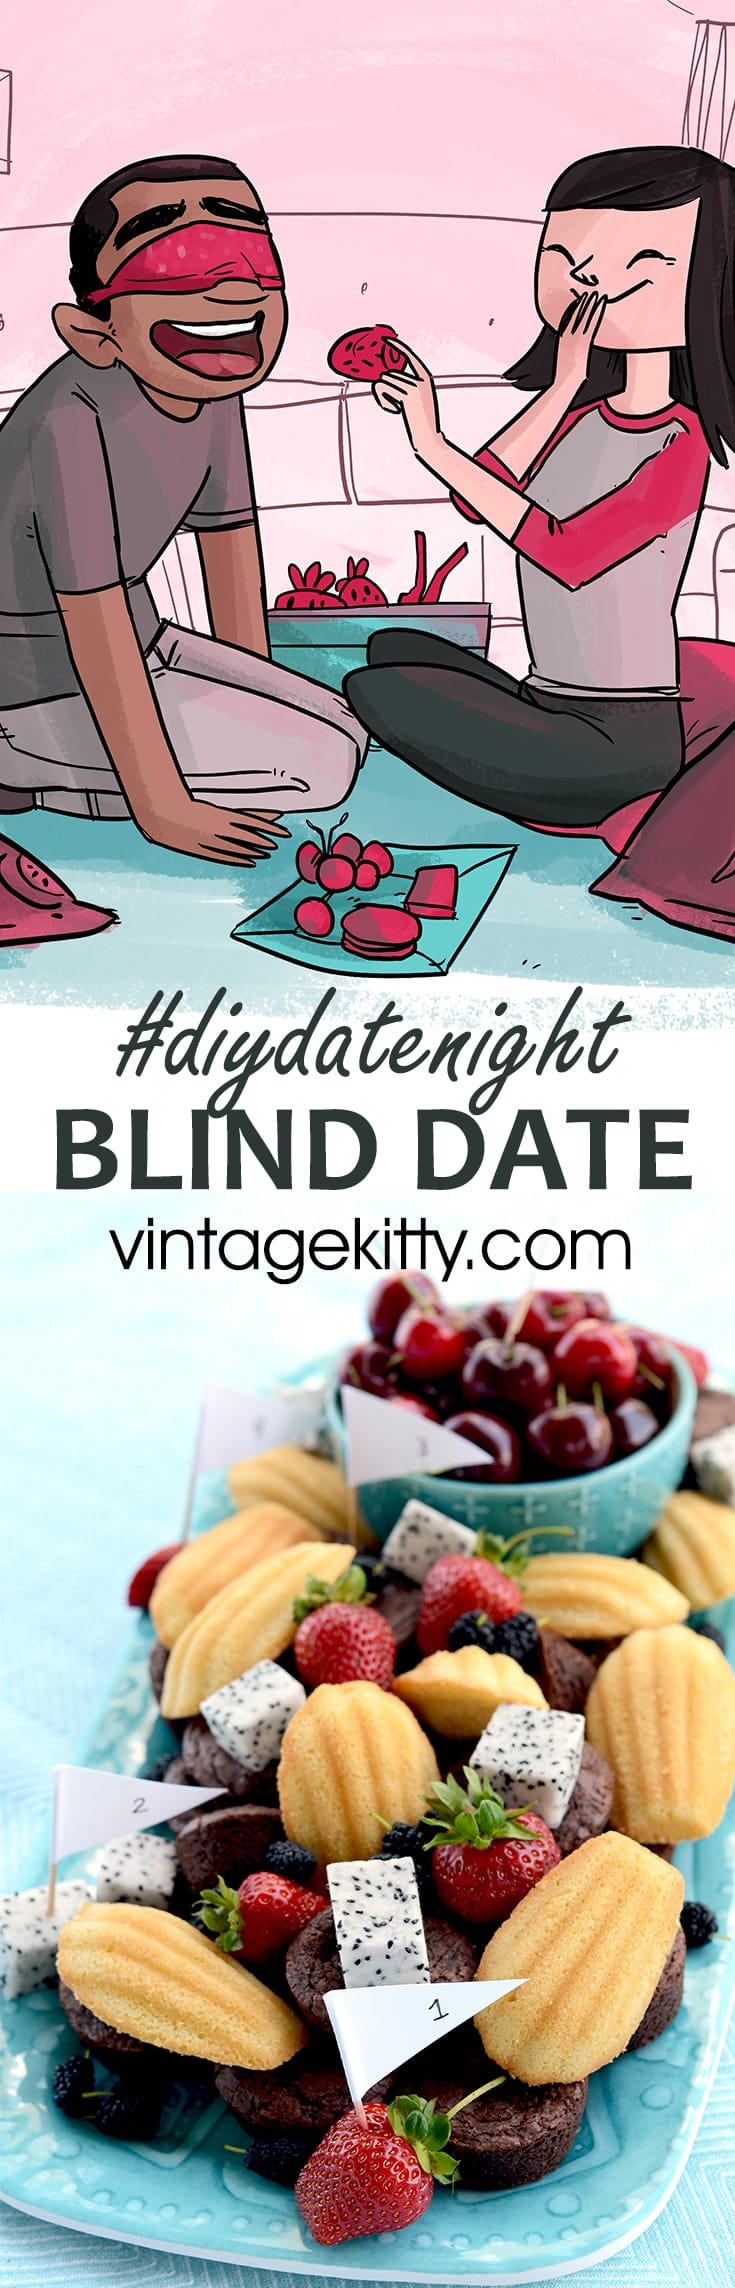 "What is sexier than a ""blind"" date #diydatenight? Have a little blindfolded fun with a taste test challenge and double blind hide 'n seek!"